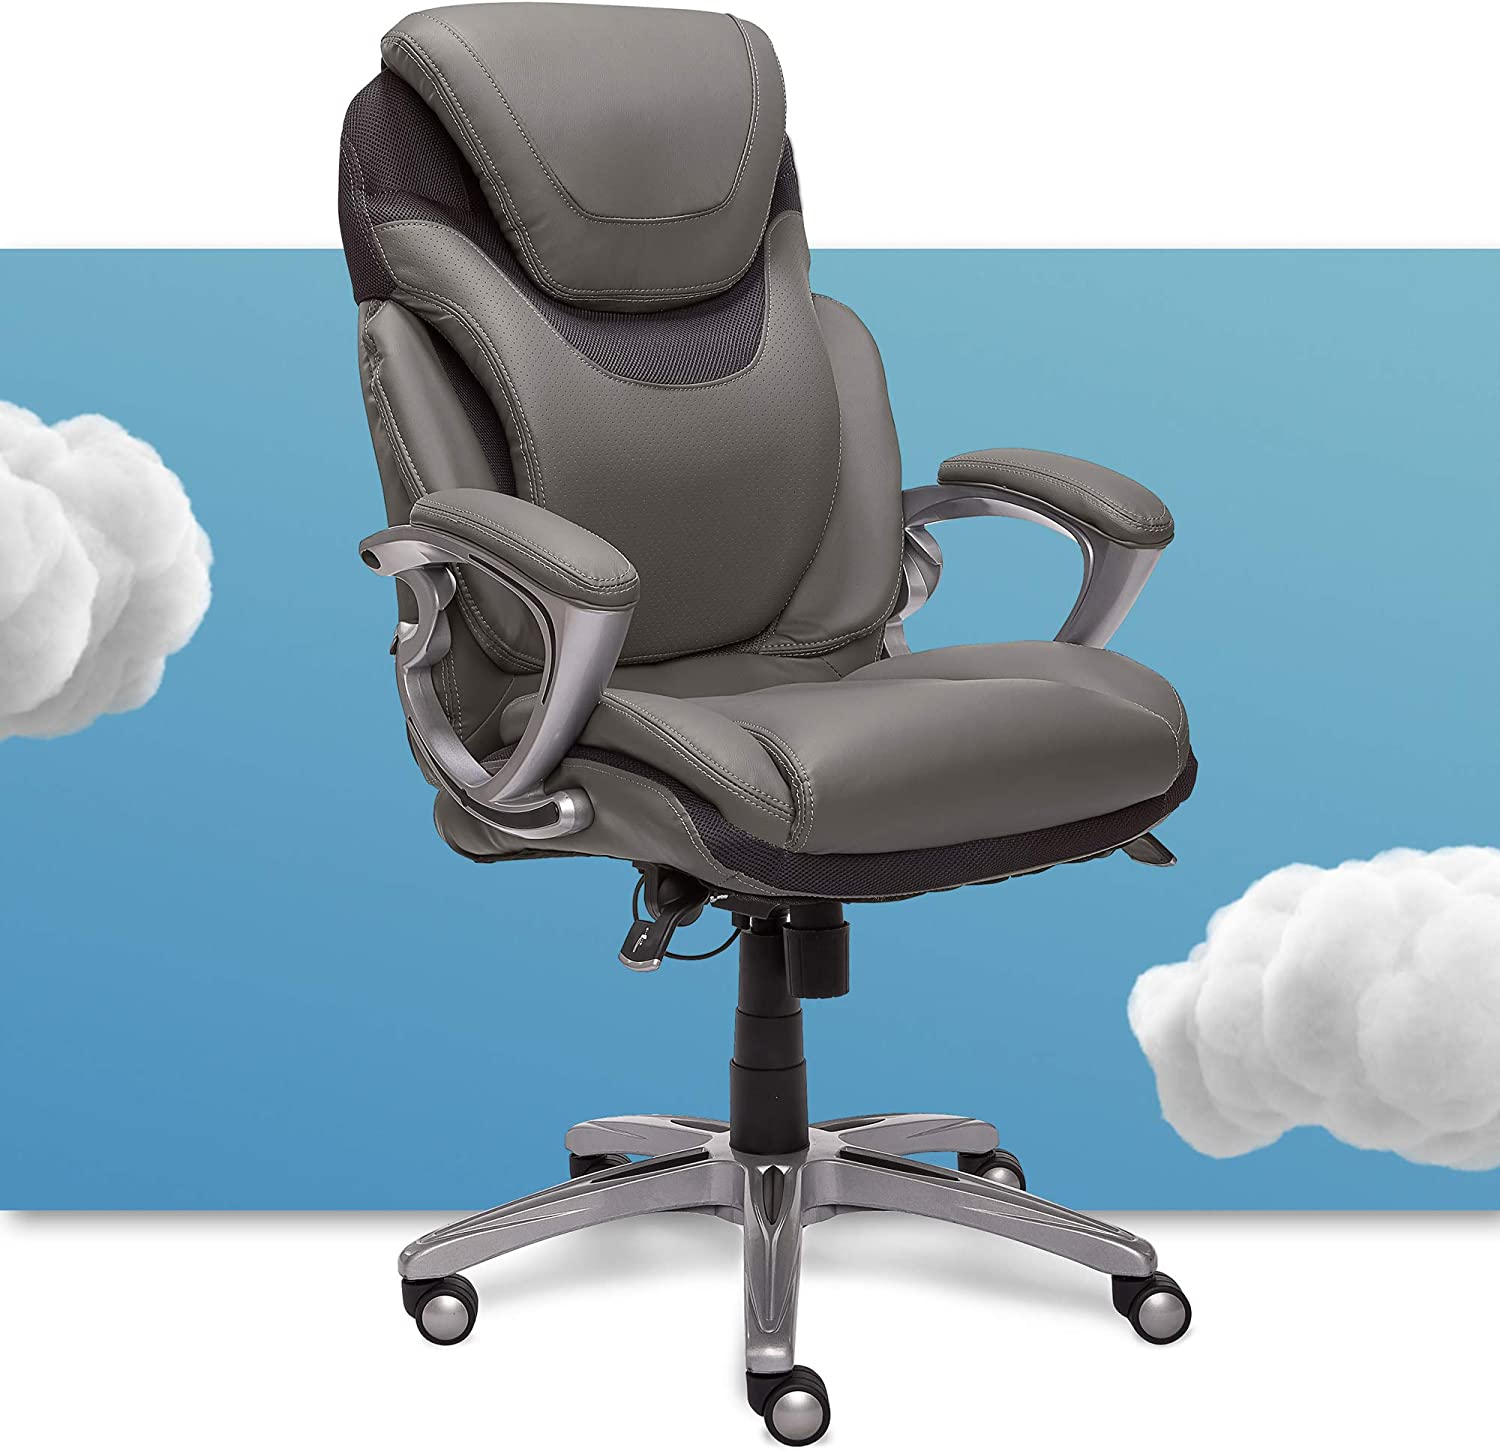 71rbe3s7lWL. AC SL1500 - What is The Best Computer Chair For Long Hours Sitting? [Comfortable and Ergonomic] - ChairPicks